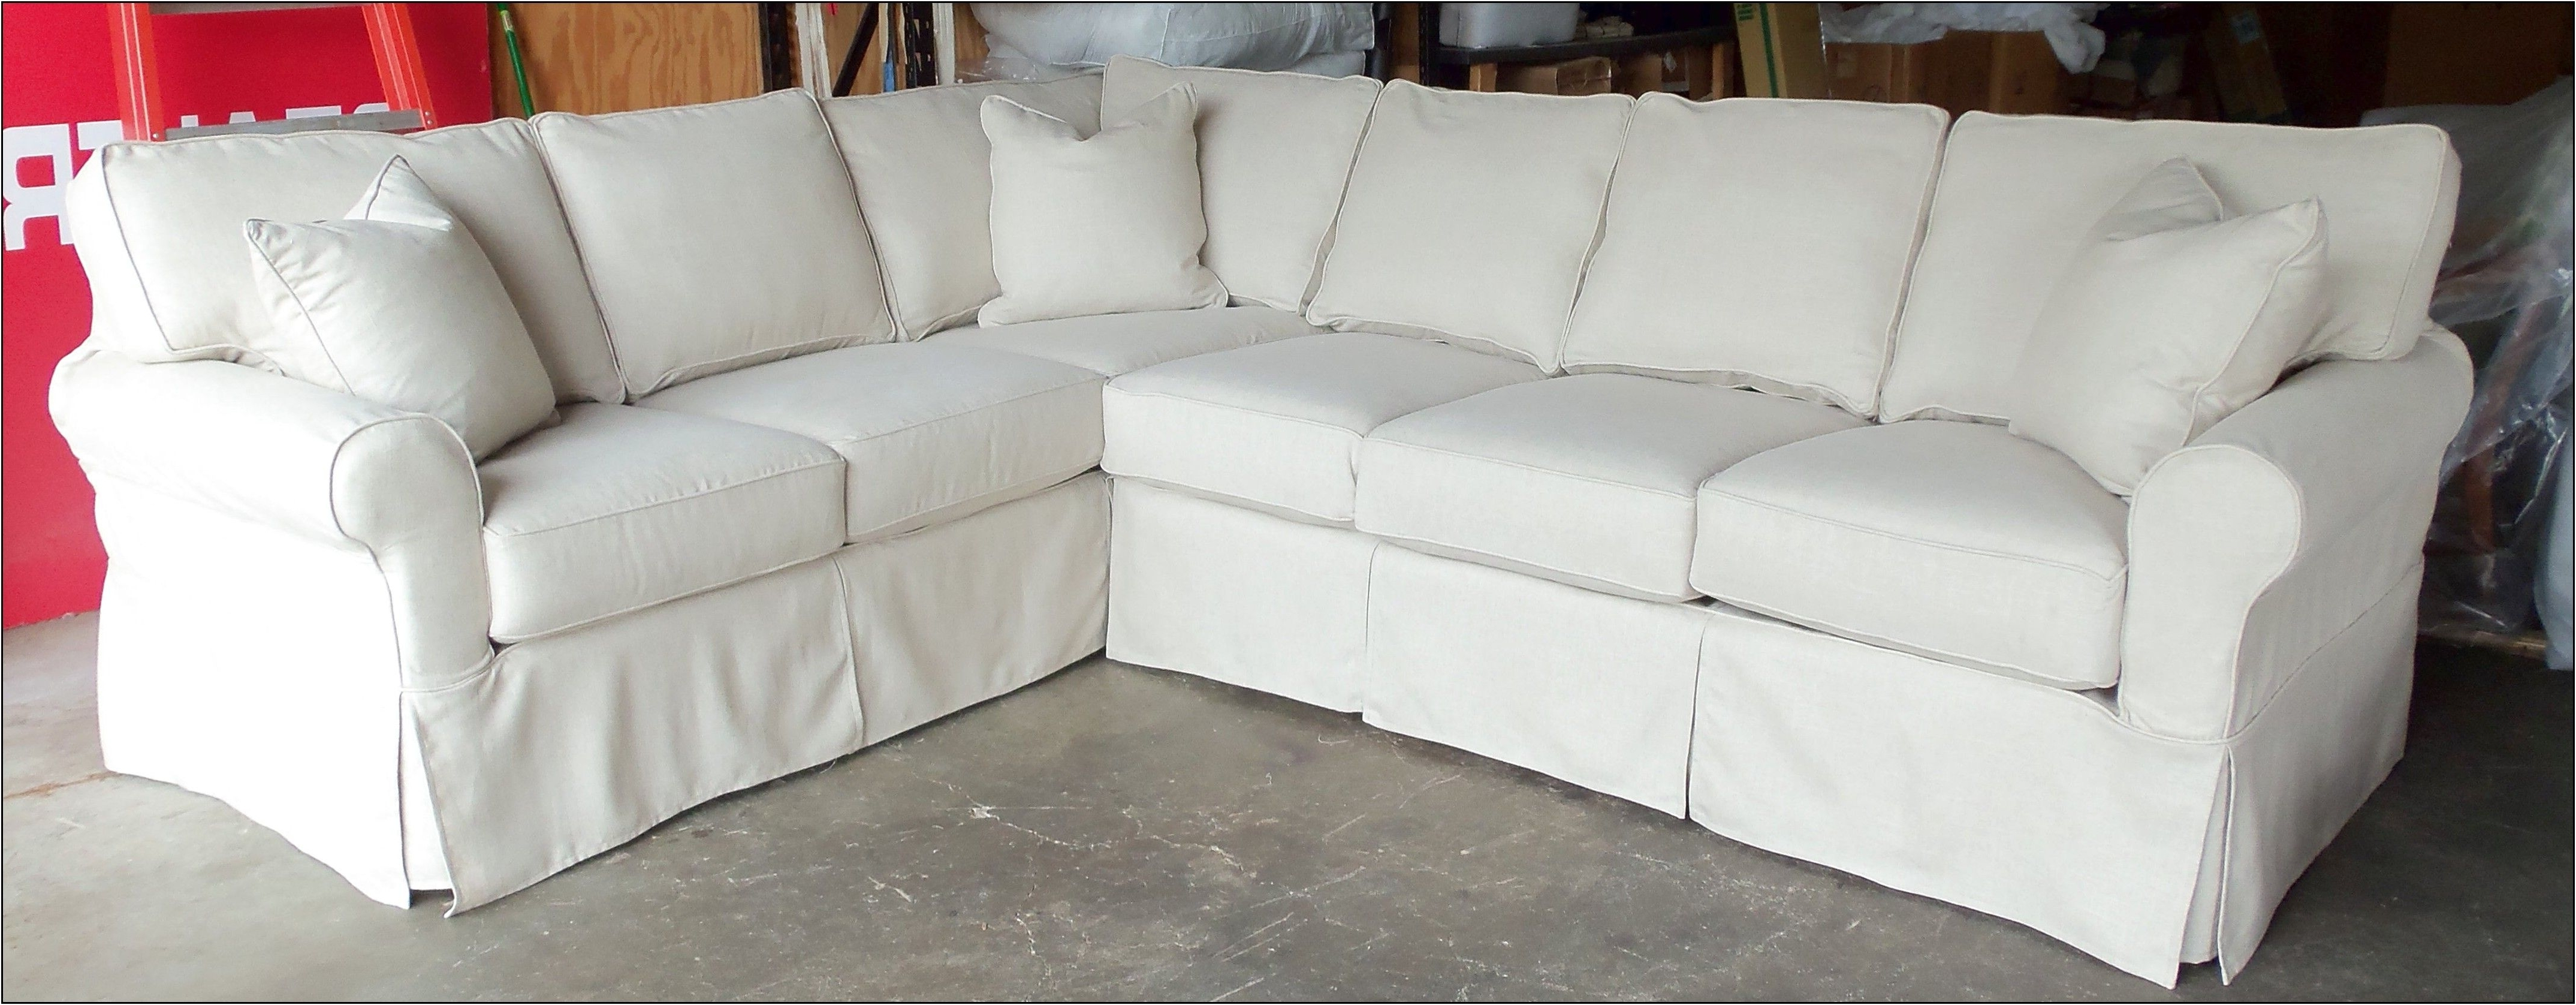 Cool Sectional Couch Cover , Best Sectional Couch Cover 72 For With Most Recent Slipcover Sectional Sofas With Chaise (View 12 of 15)